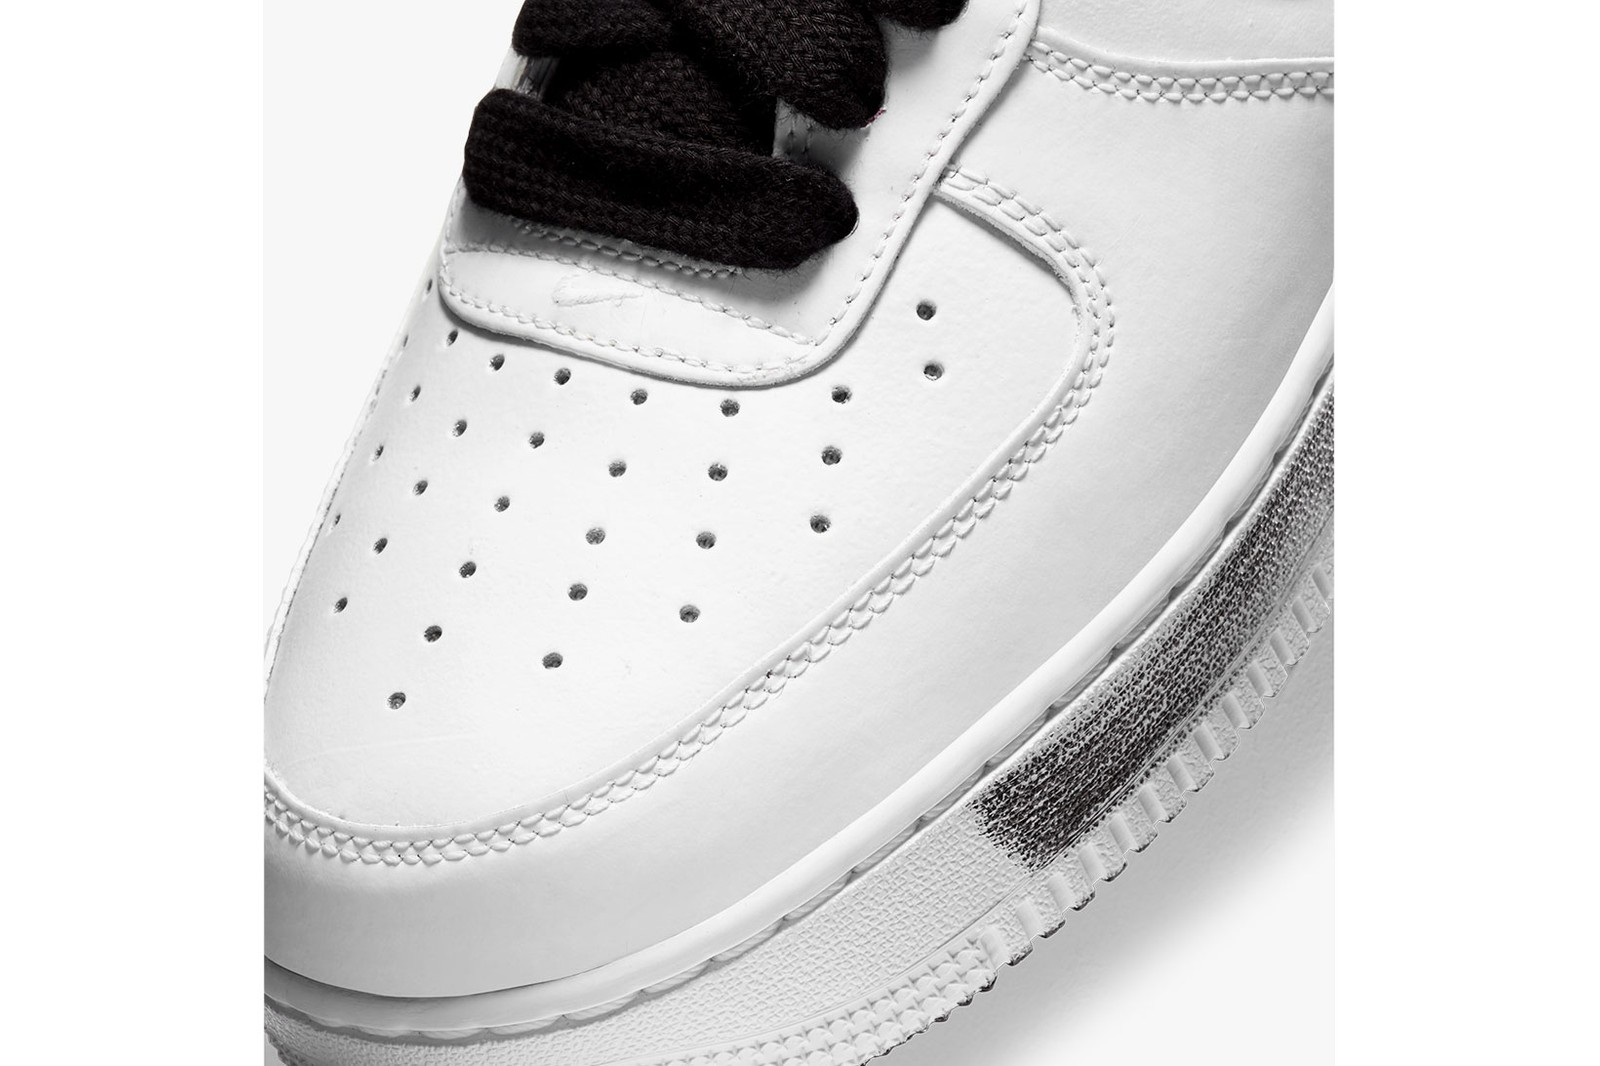 g-dragon peaceminusone nike air force 1 af1 para-noise white pmo official look release where to buy